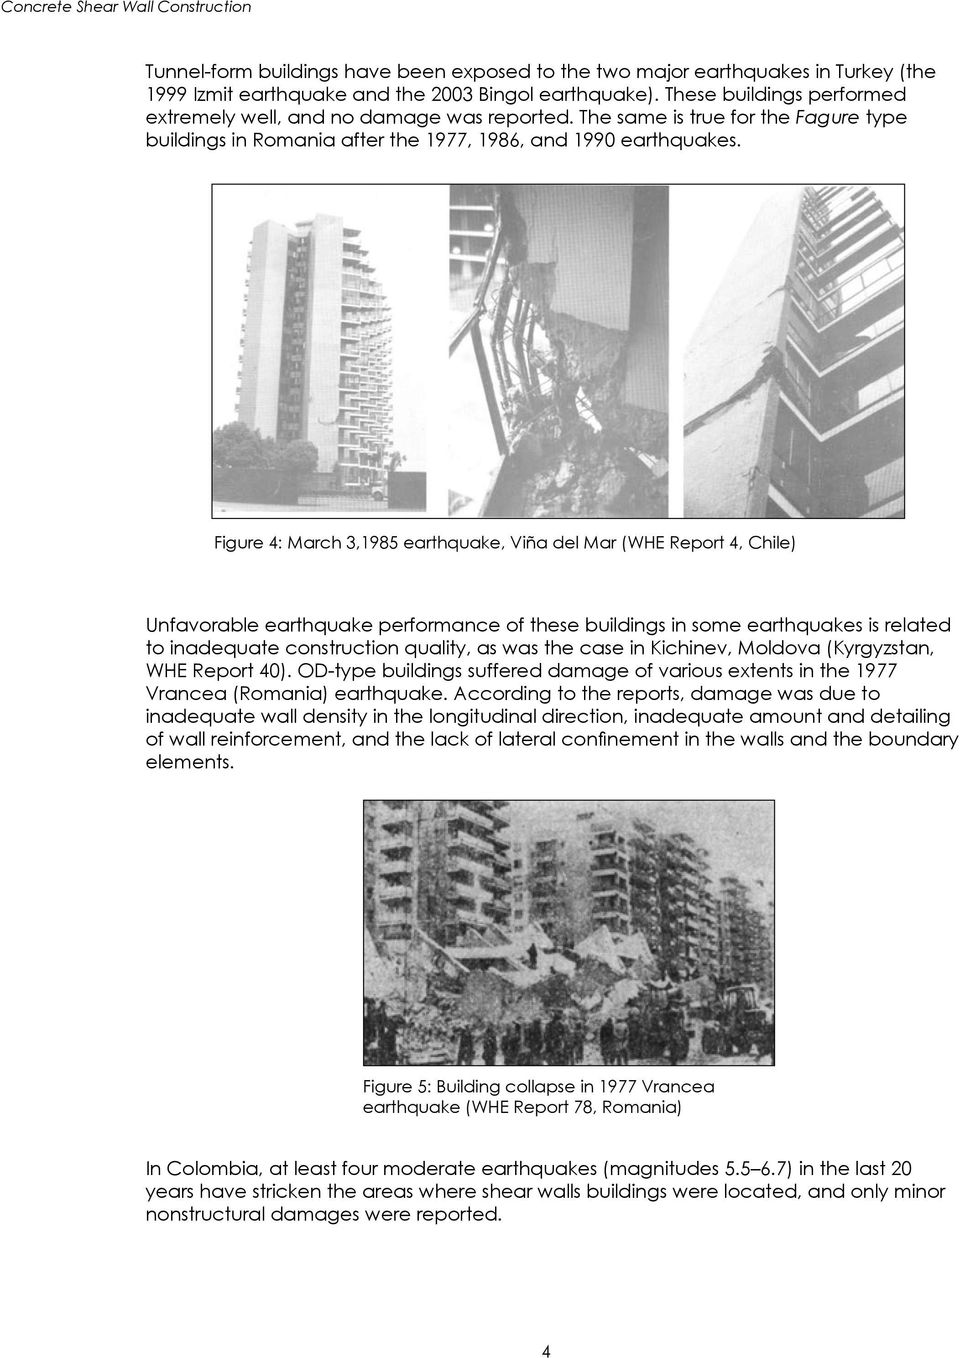 Figure 4: March 3,1985 earthquake, Viña del Mar (WHE Report 4, Chile) Unfavorable earthquake performance of these buildings in some earthquakes is related to inadequate construction quality, as was